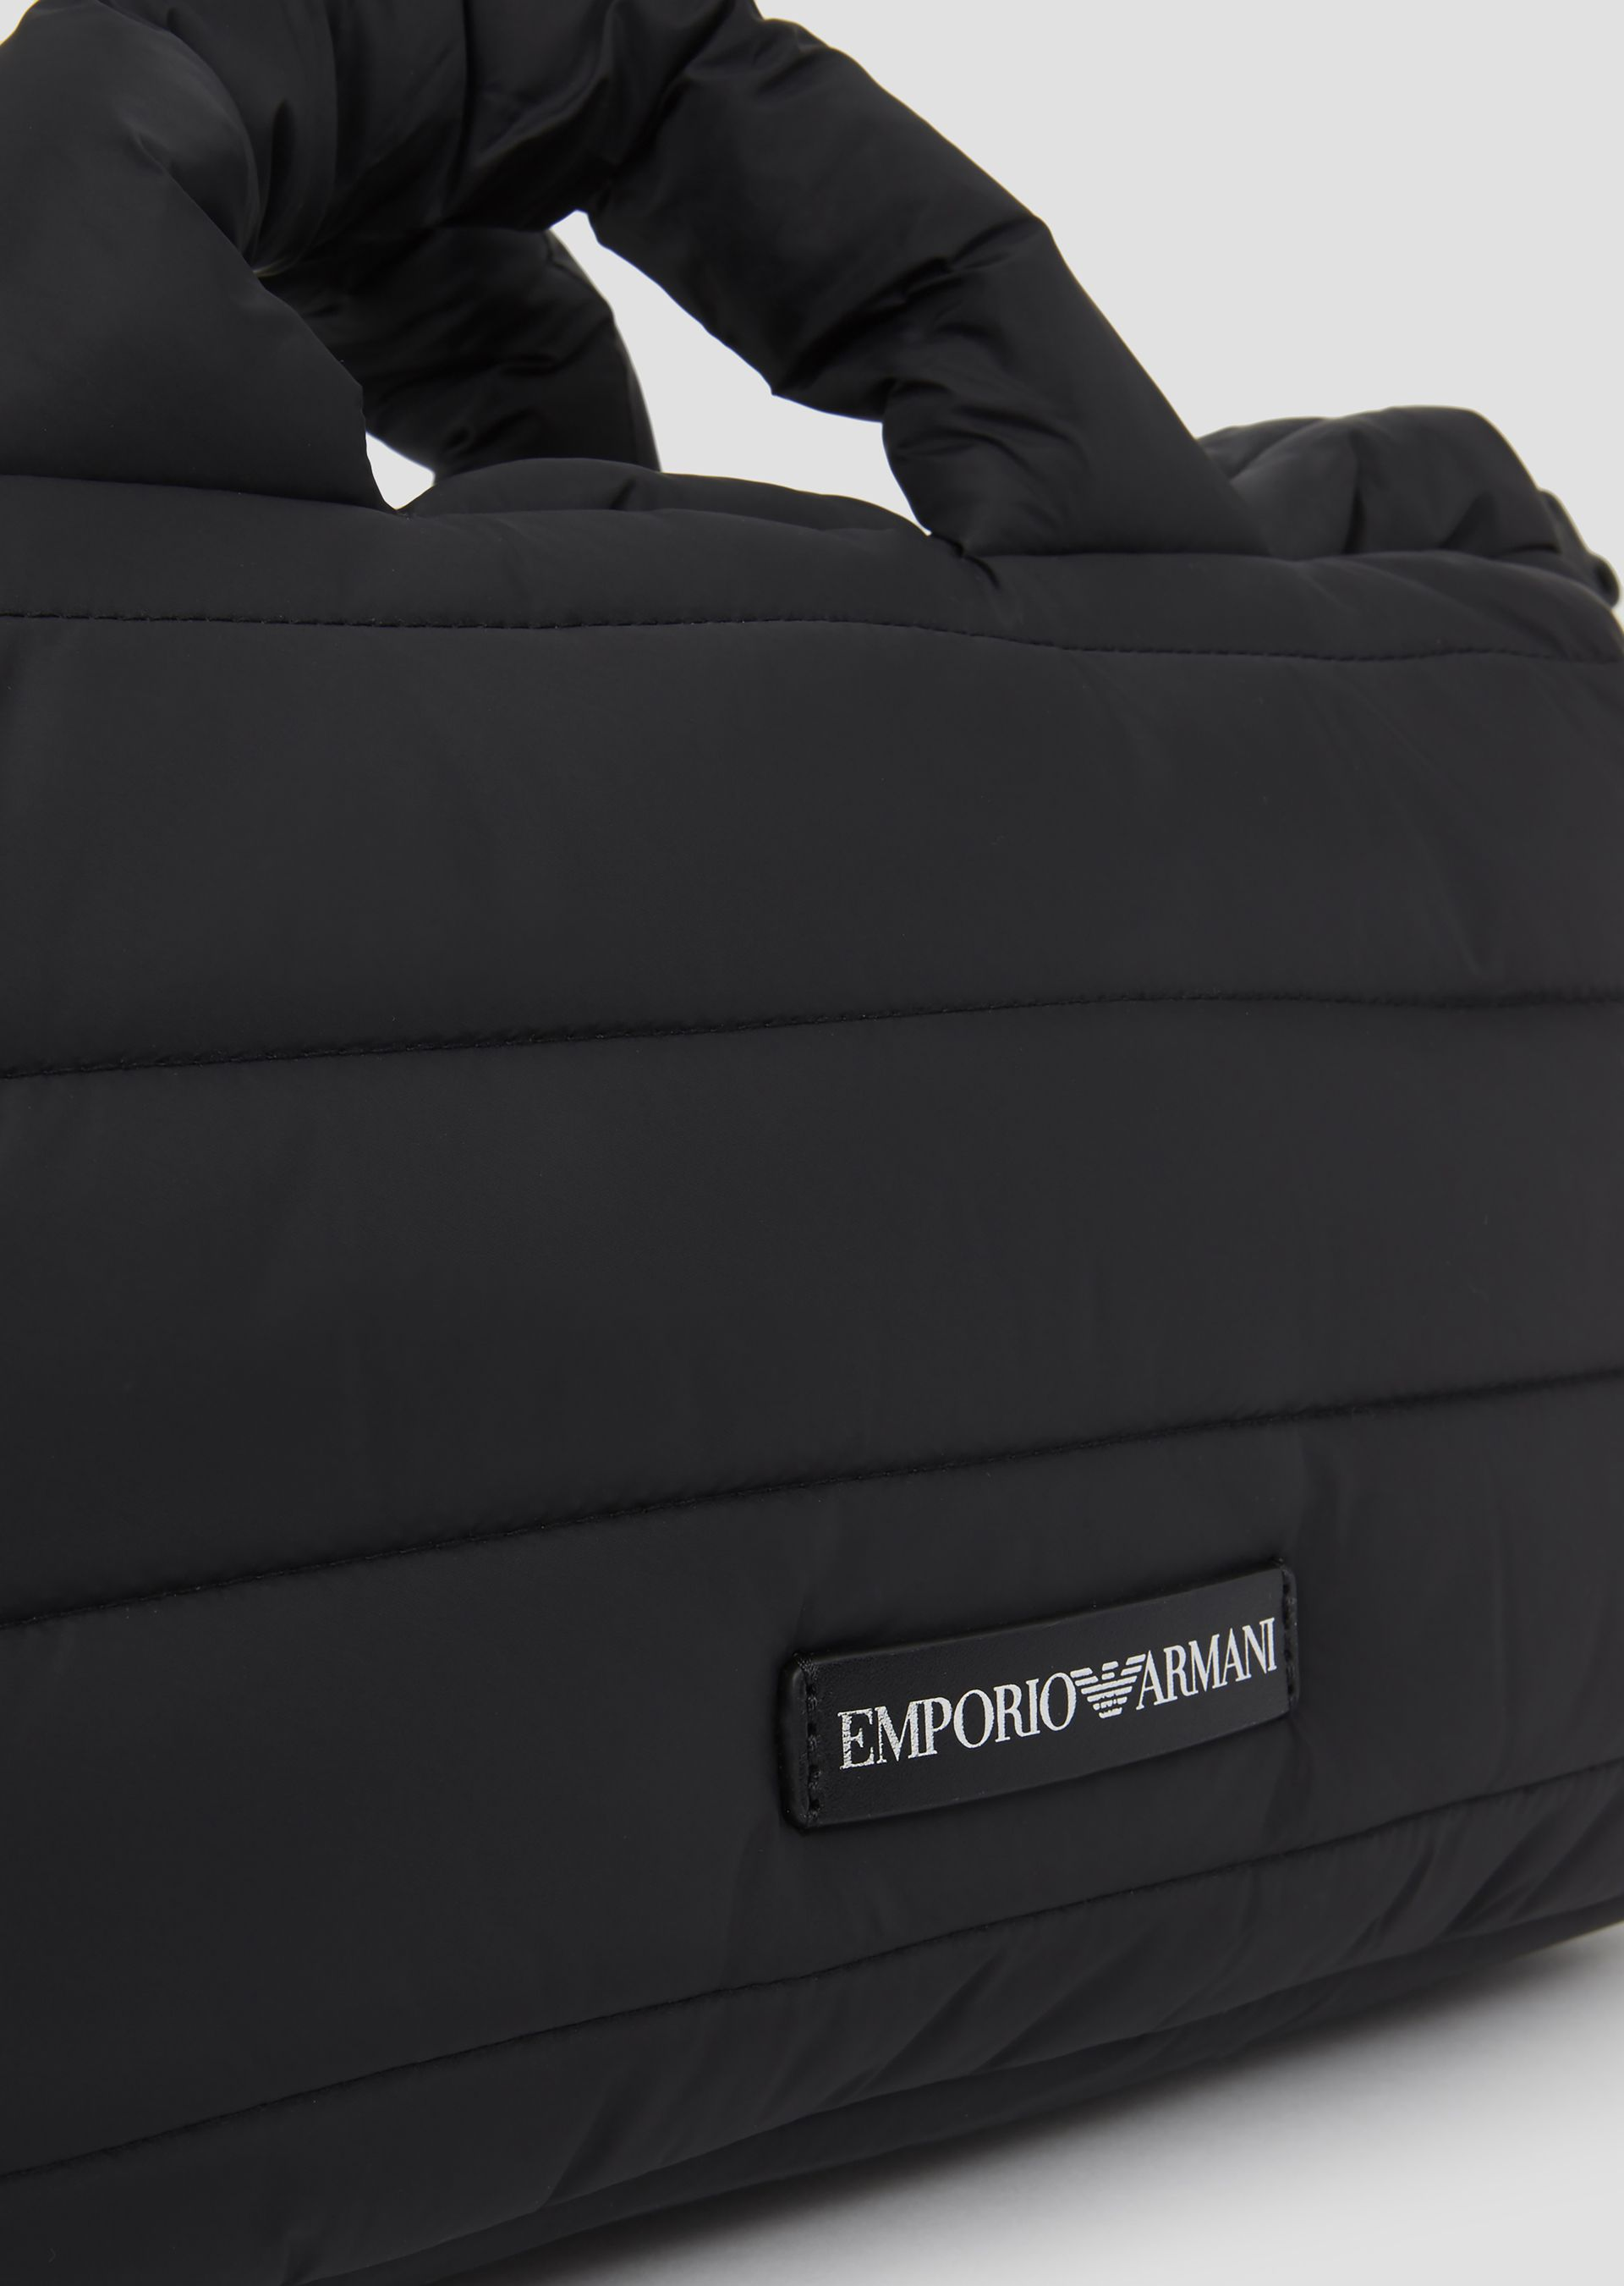 Emporio Armani - Padded puffer bag with Emporio Armani logo shoulder strap  - 6 7a0aff81c6c6b